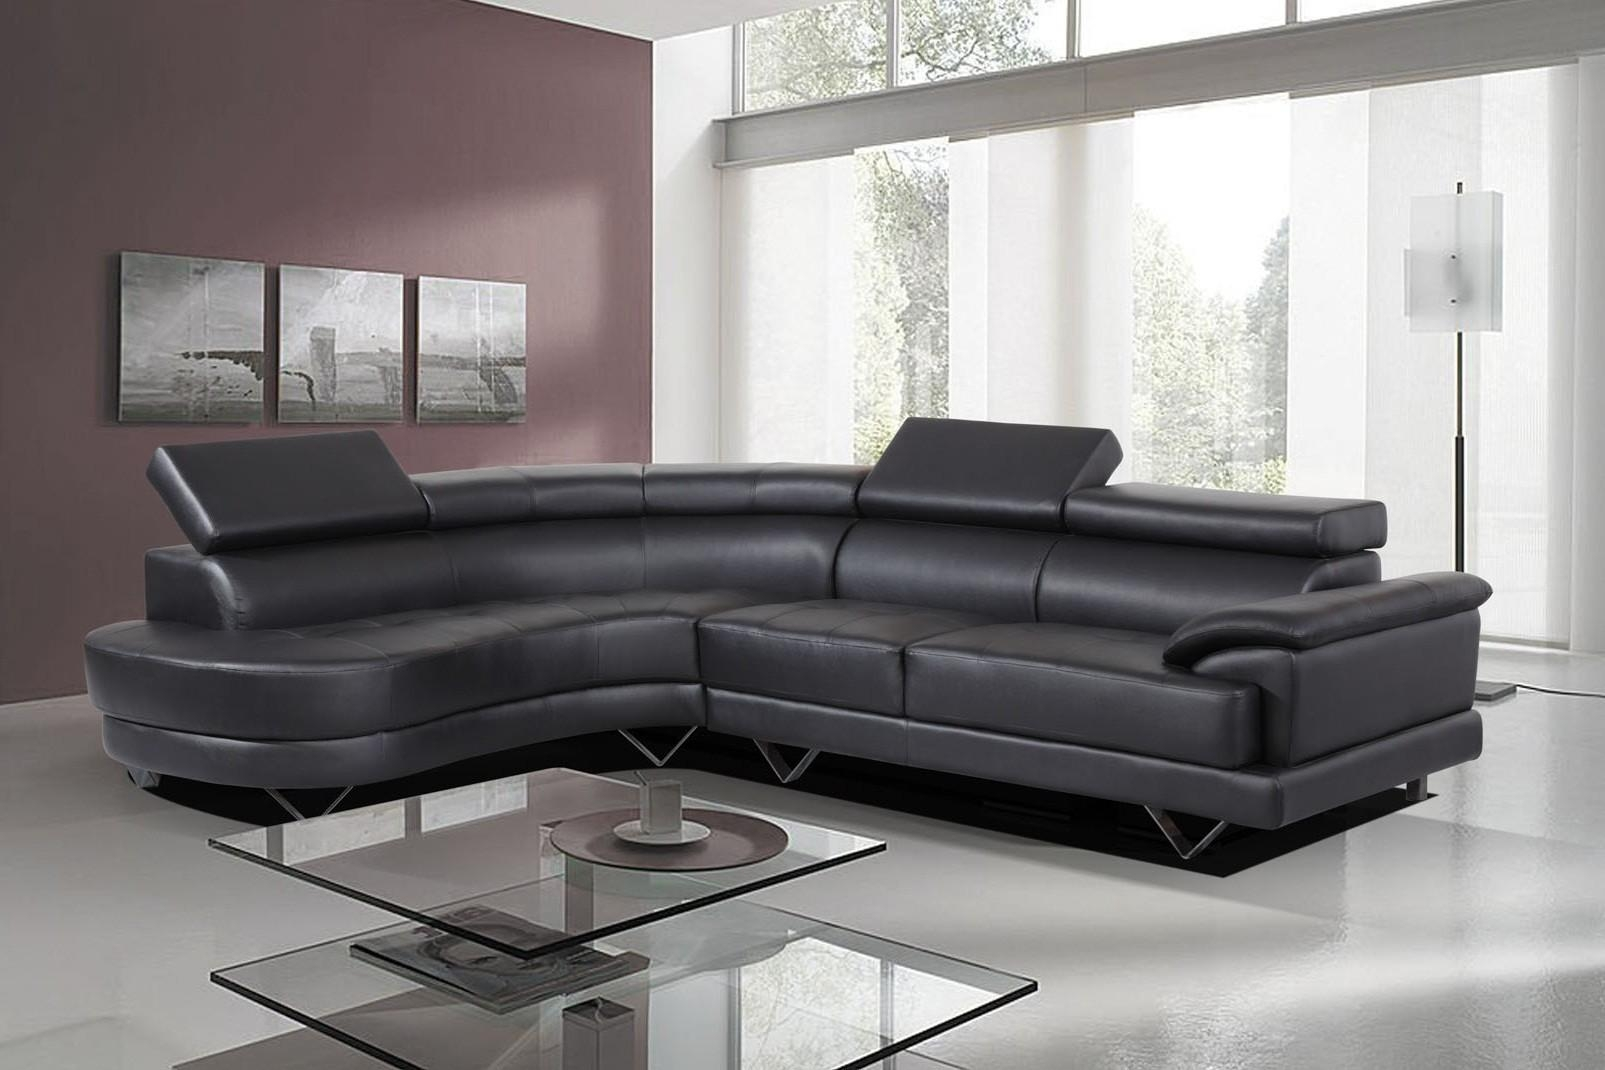 Black Bonded Leather Sofa | Sofa Gallery | Kengire Throughout Bonded Leather Sofas (Image 5 of 20)